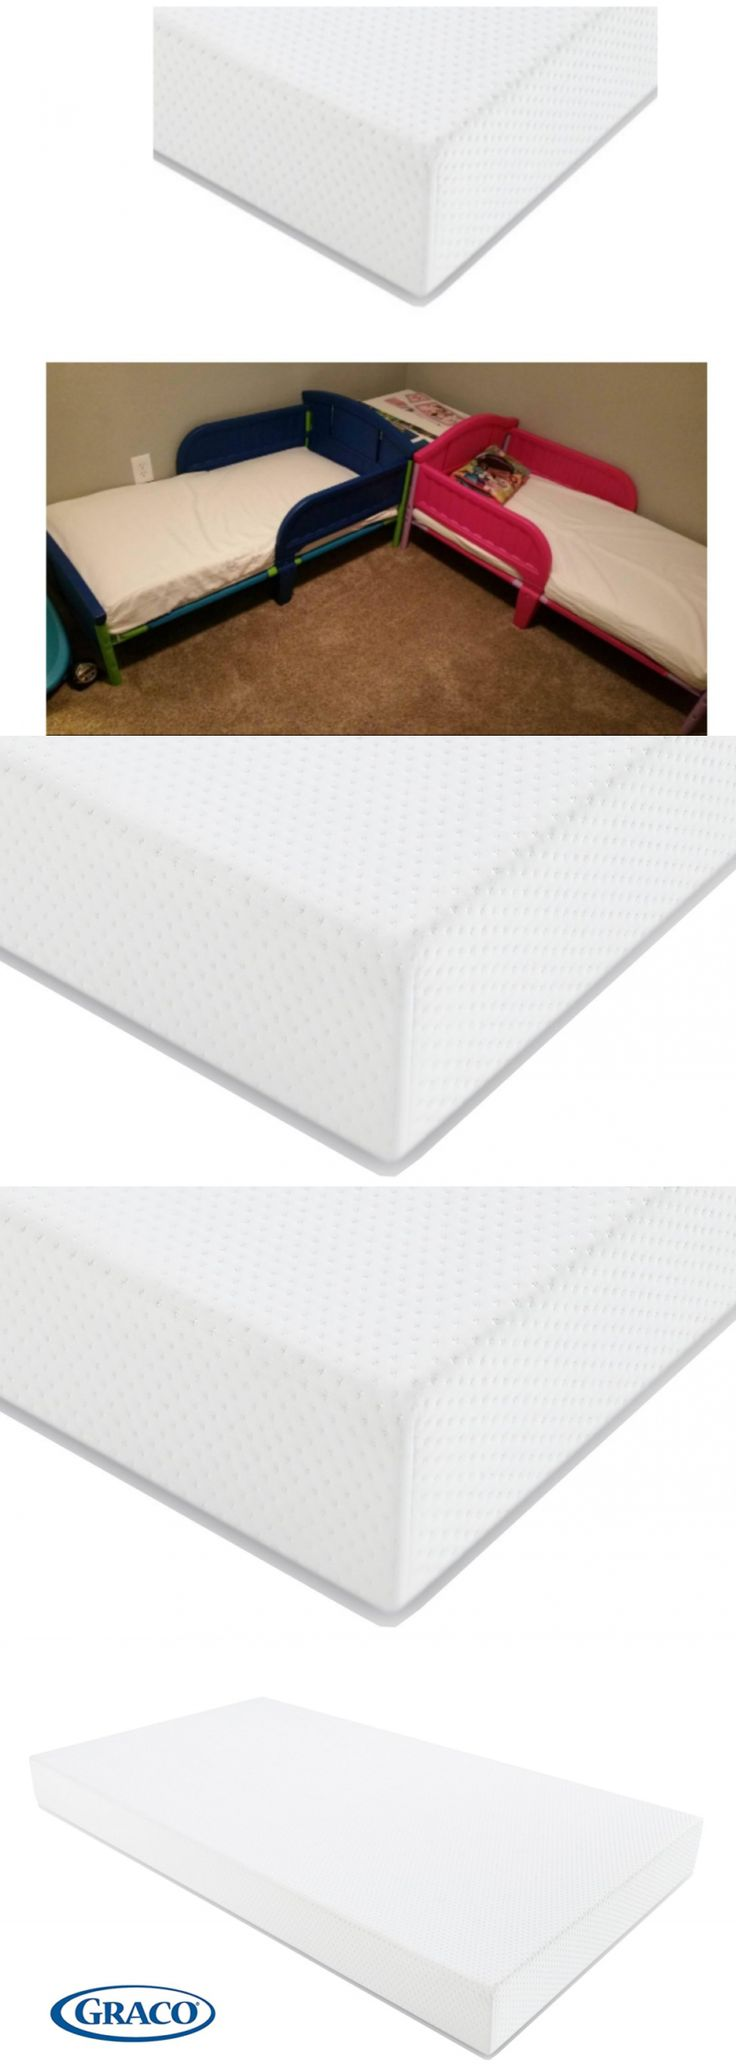 Crib Mattresses 117035: Foam Crib And Toddlers Bed Mattress With Lightweight Anti-Static Anti-Microbial -> BUY IT NOW ONLY: $66.16 on eBay!